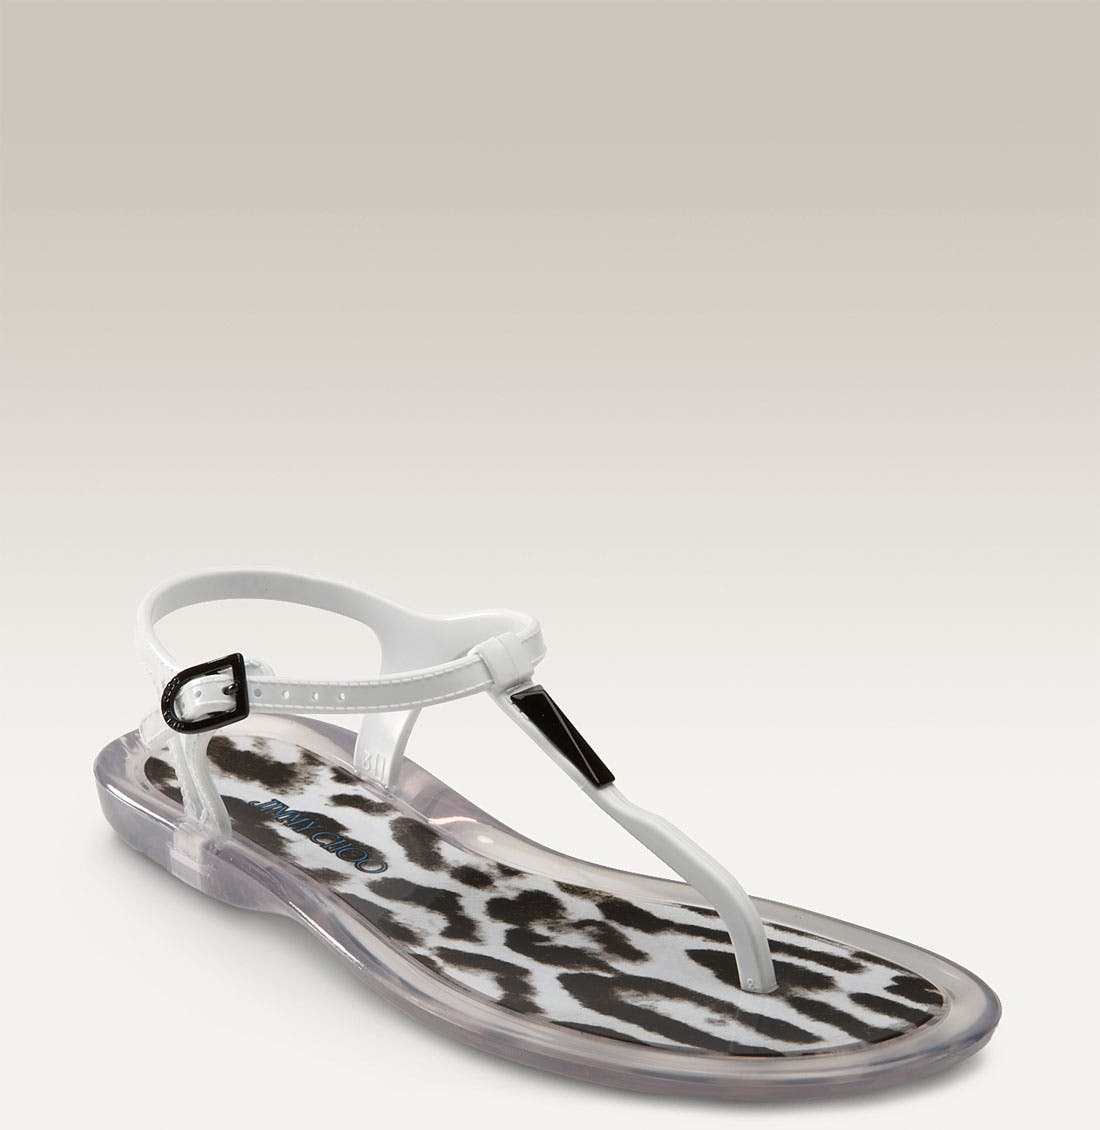 'Maui' Jelly Thong Sandal,                             Main thumbnail 1, color,                             001